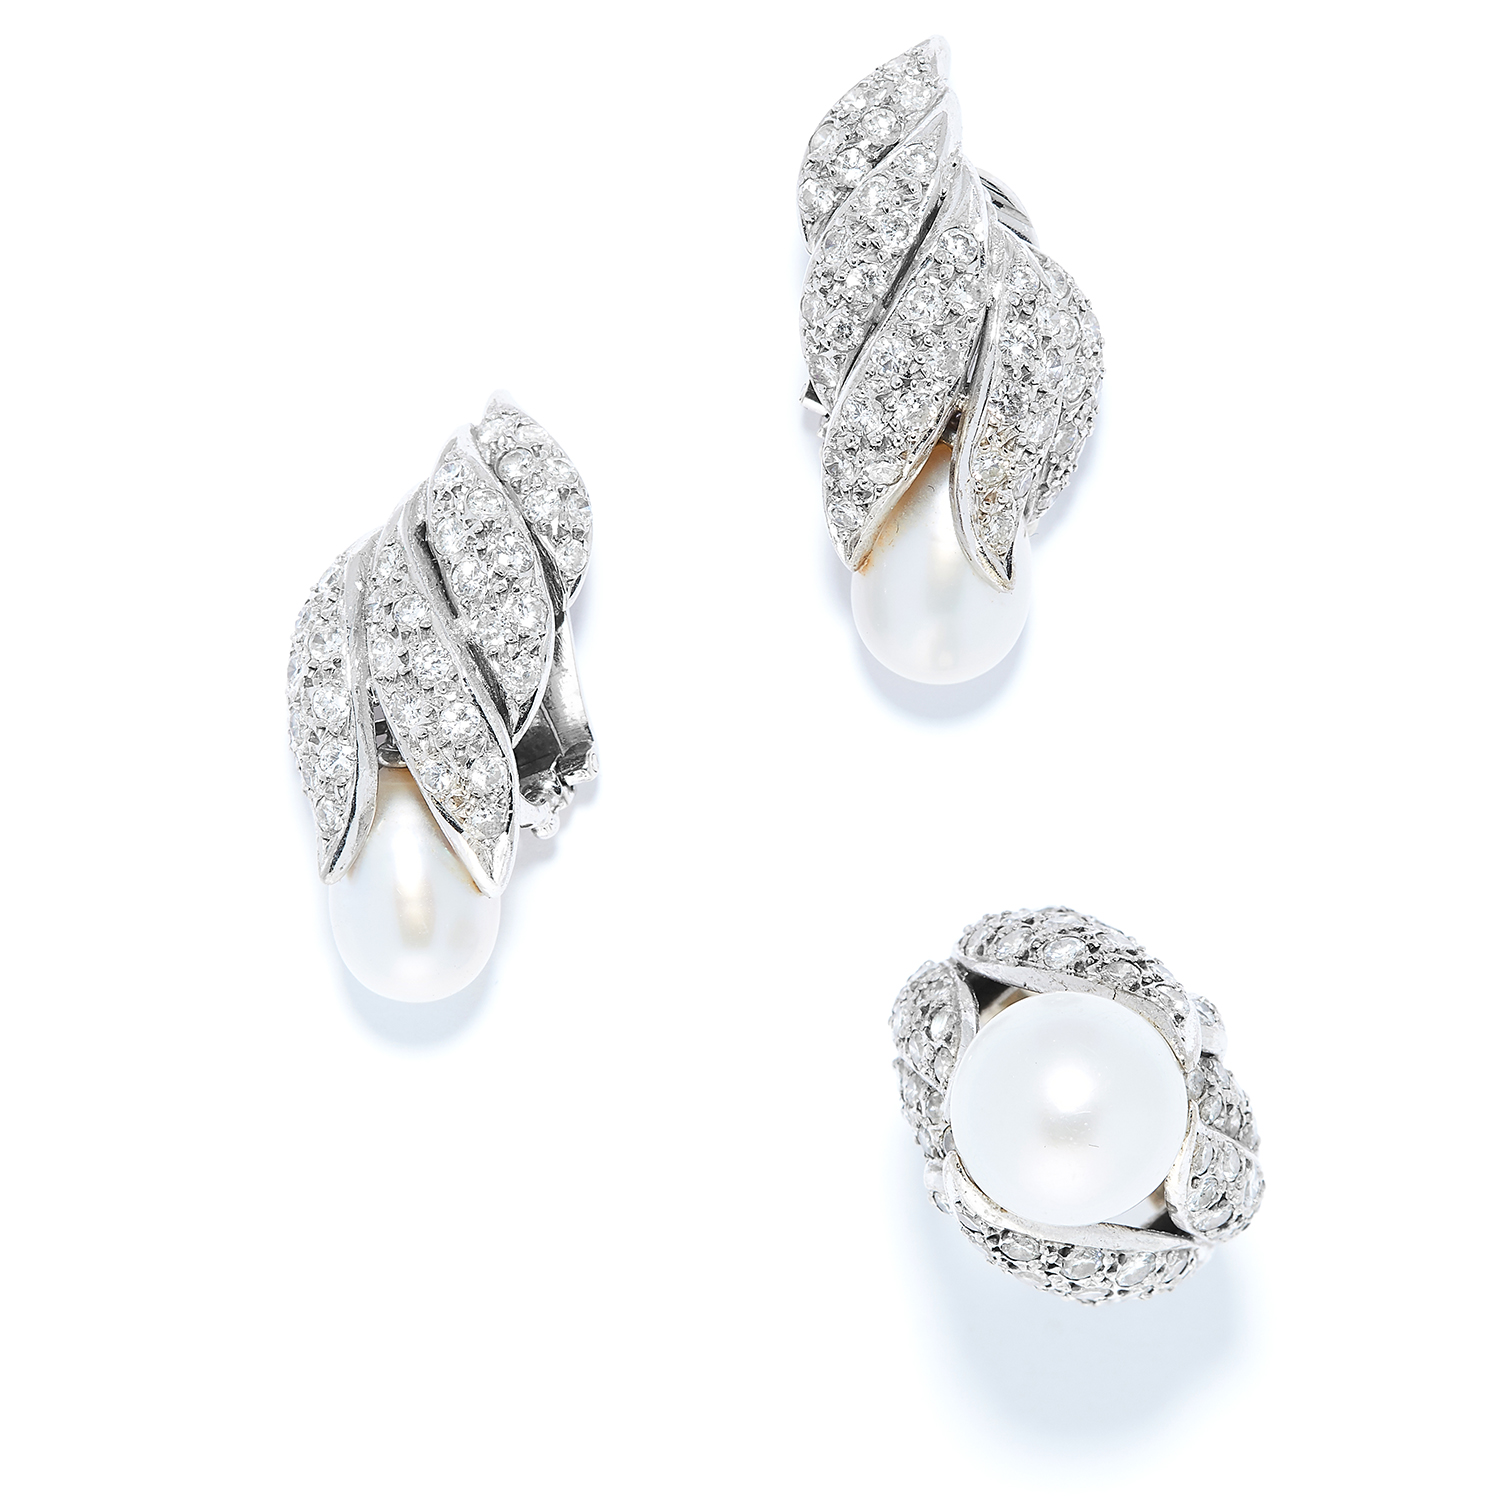 PEARL AND DIAMOND EARRINGS AND RING SUITE, CIRCA 1930 in platinum, each set with a pearl in